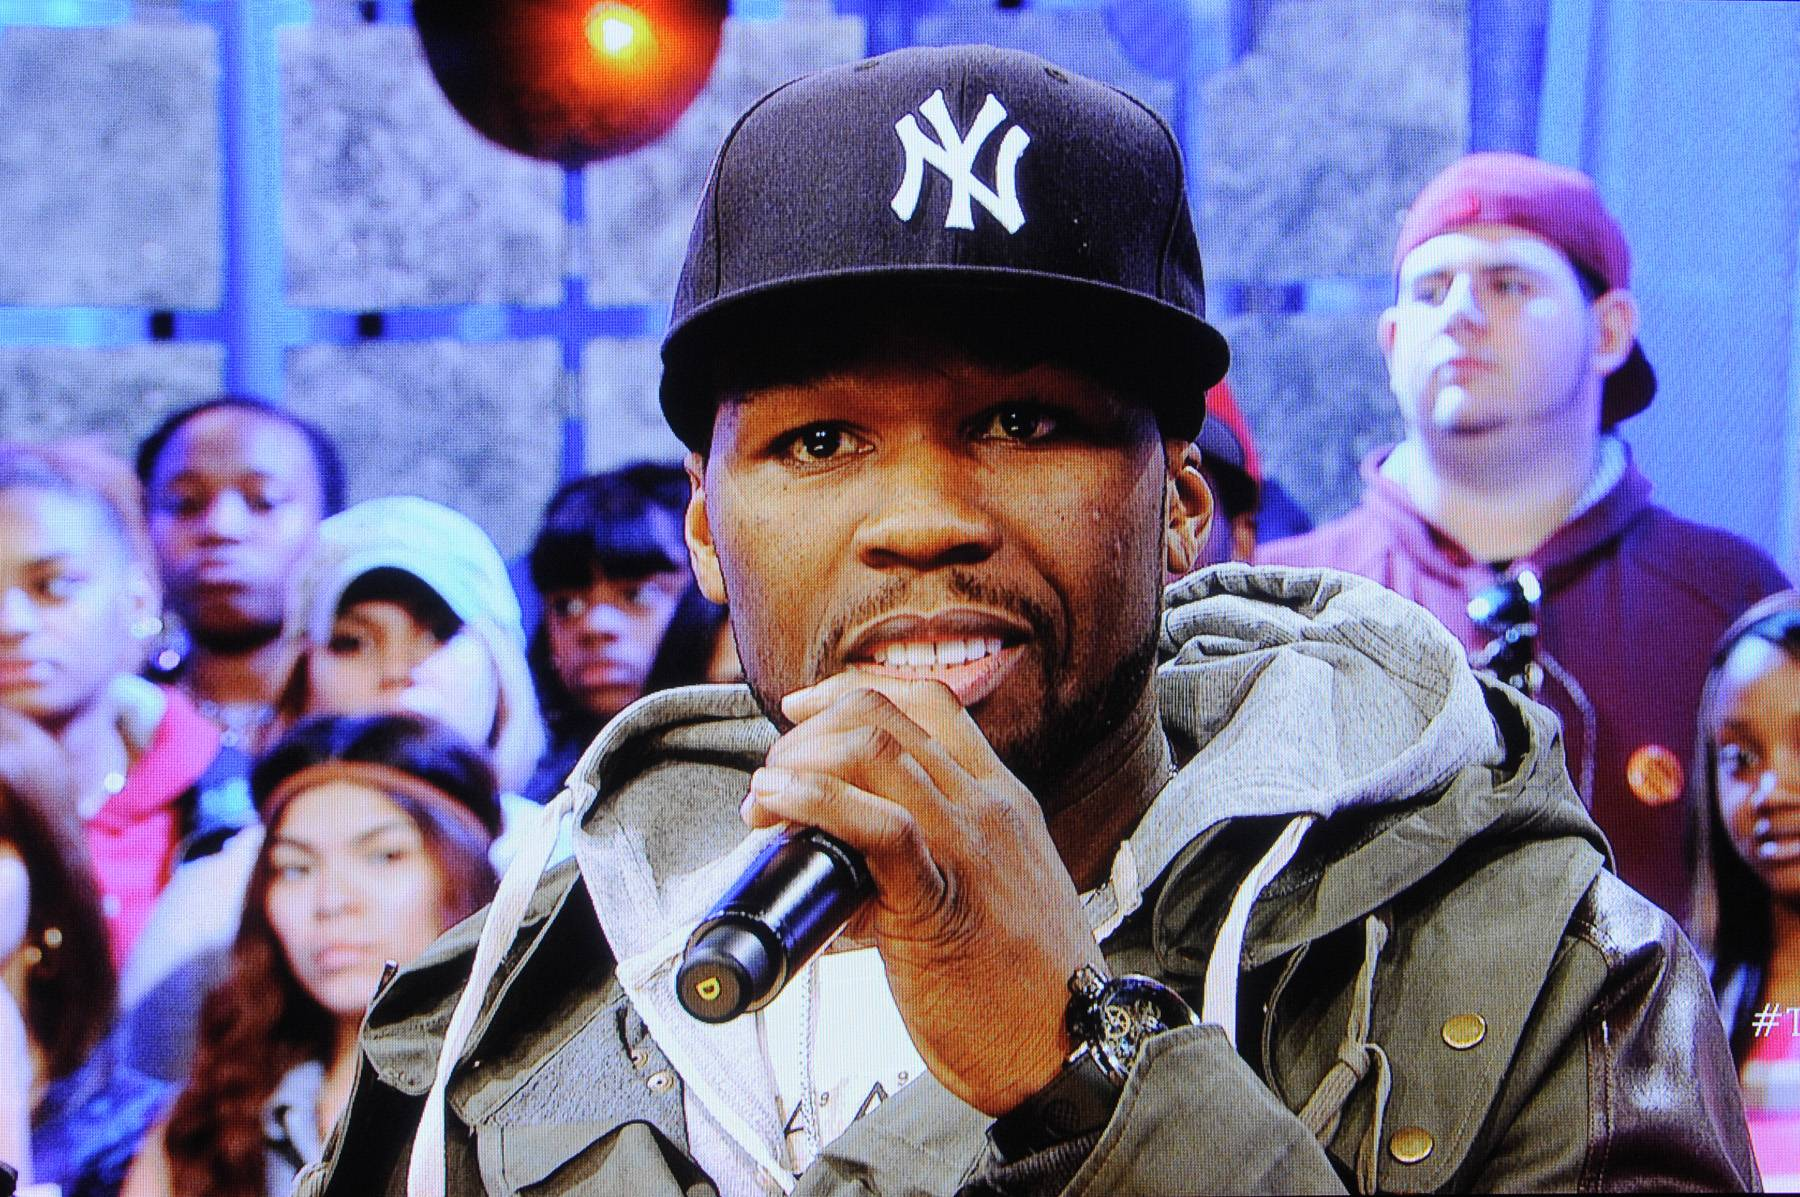 50 Cent, TBA - Fif's upcoming album has been delayed for months amid accusations from the rapper that his label isn't pushing it correctly. That's an ominous sign, but his latest mixtape, The Big 10, contained some of 50's best music in years, and definitely has us looking forward to whatever the G Unit general does next.   (Photo: John Ricard / BET)